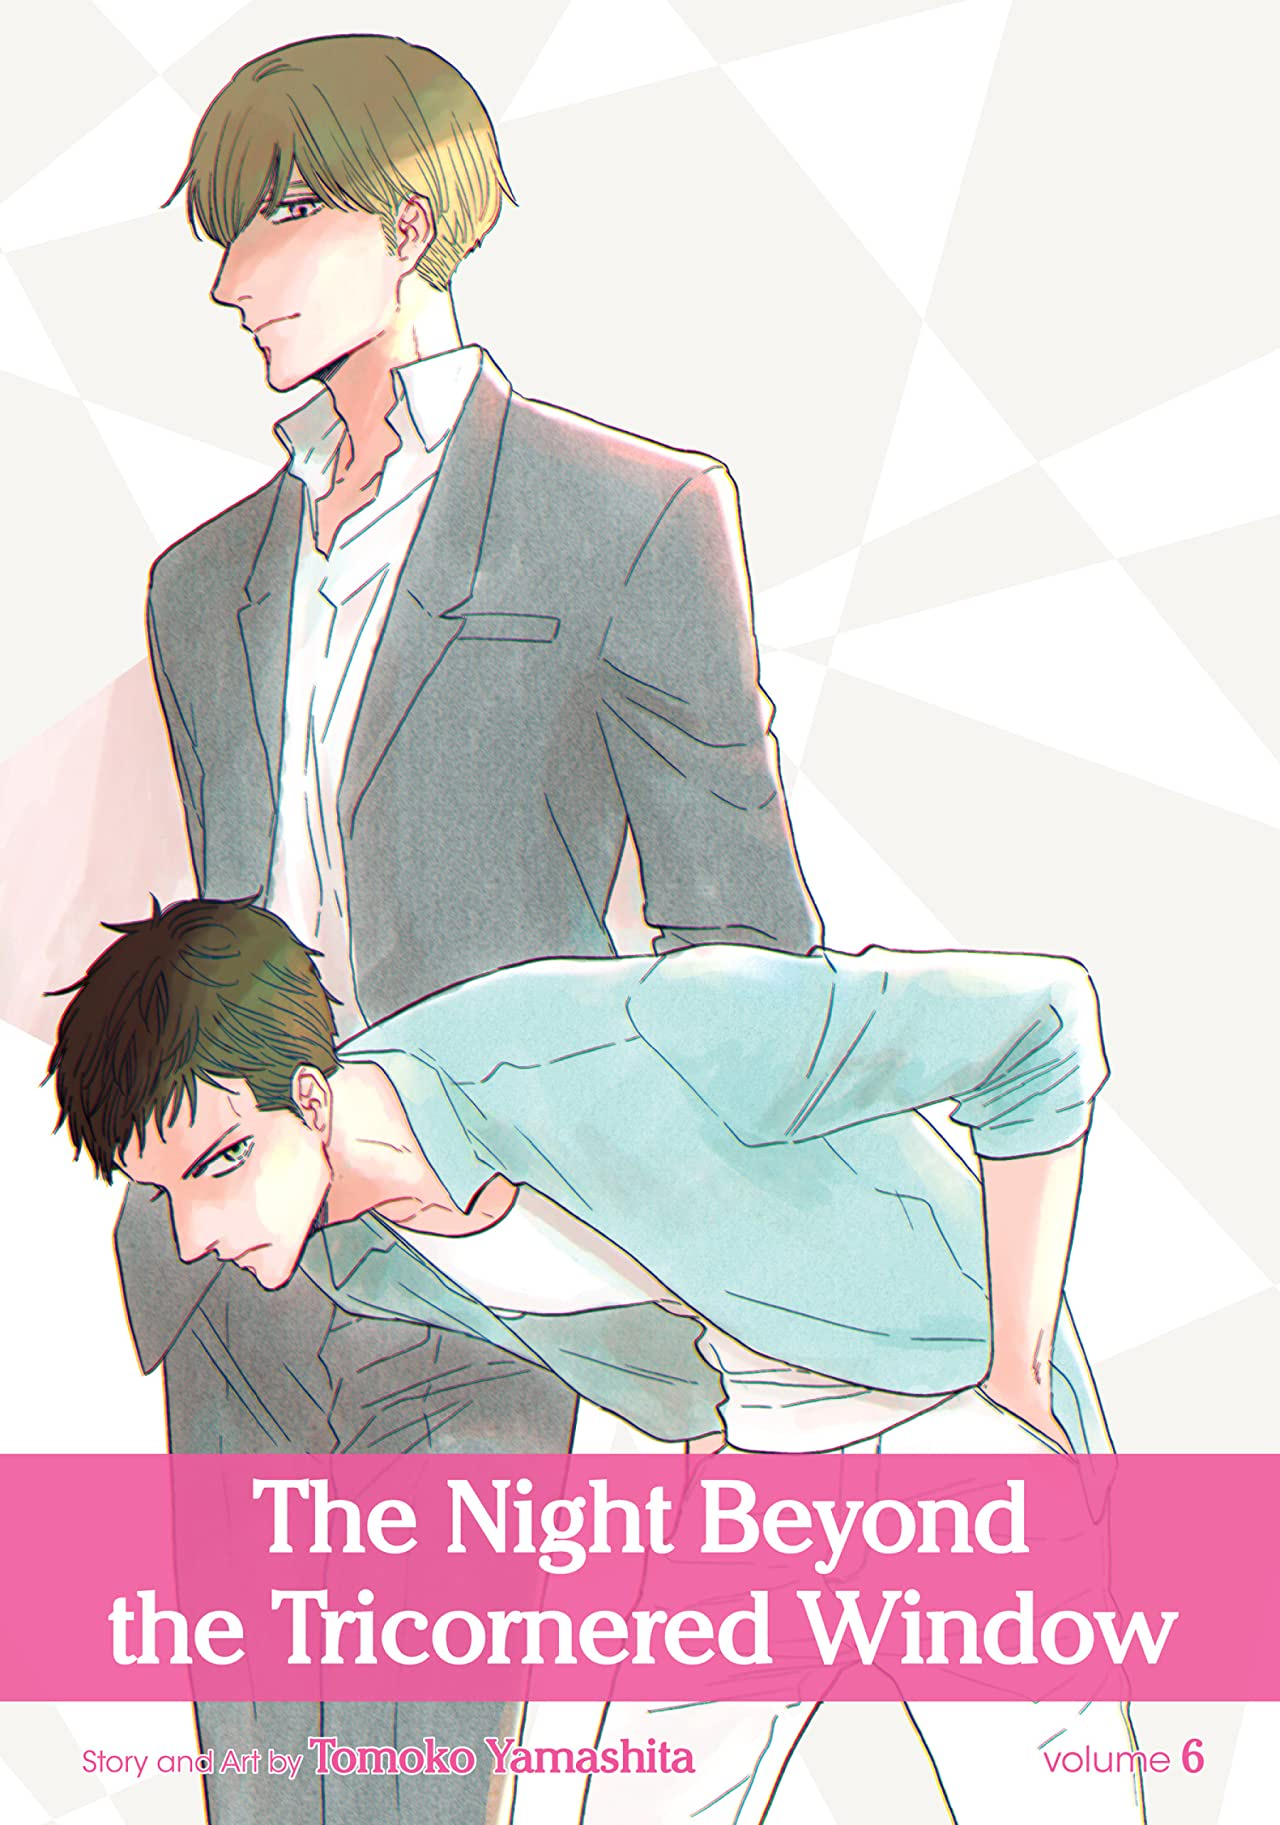 The Night Beyond the Tricornered Window Vol. 6